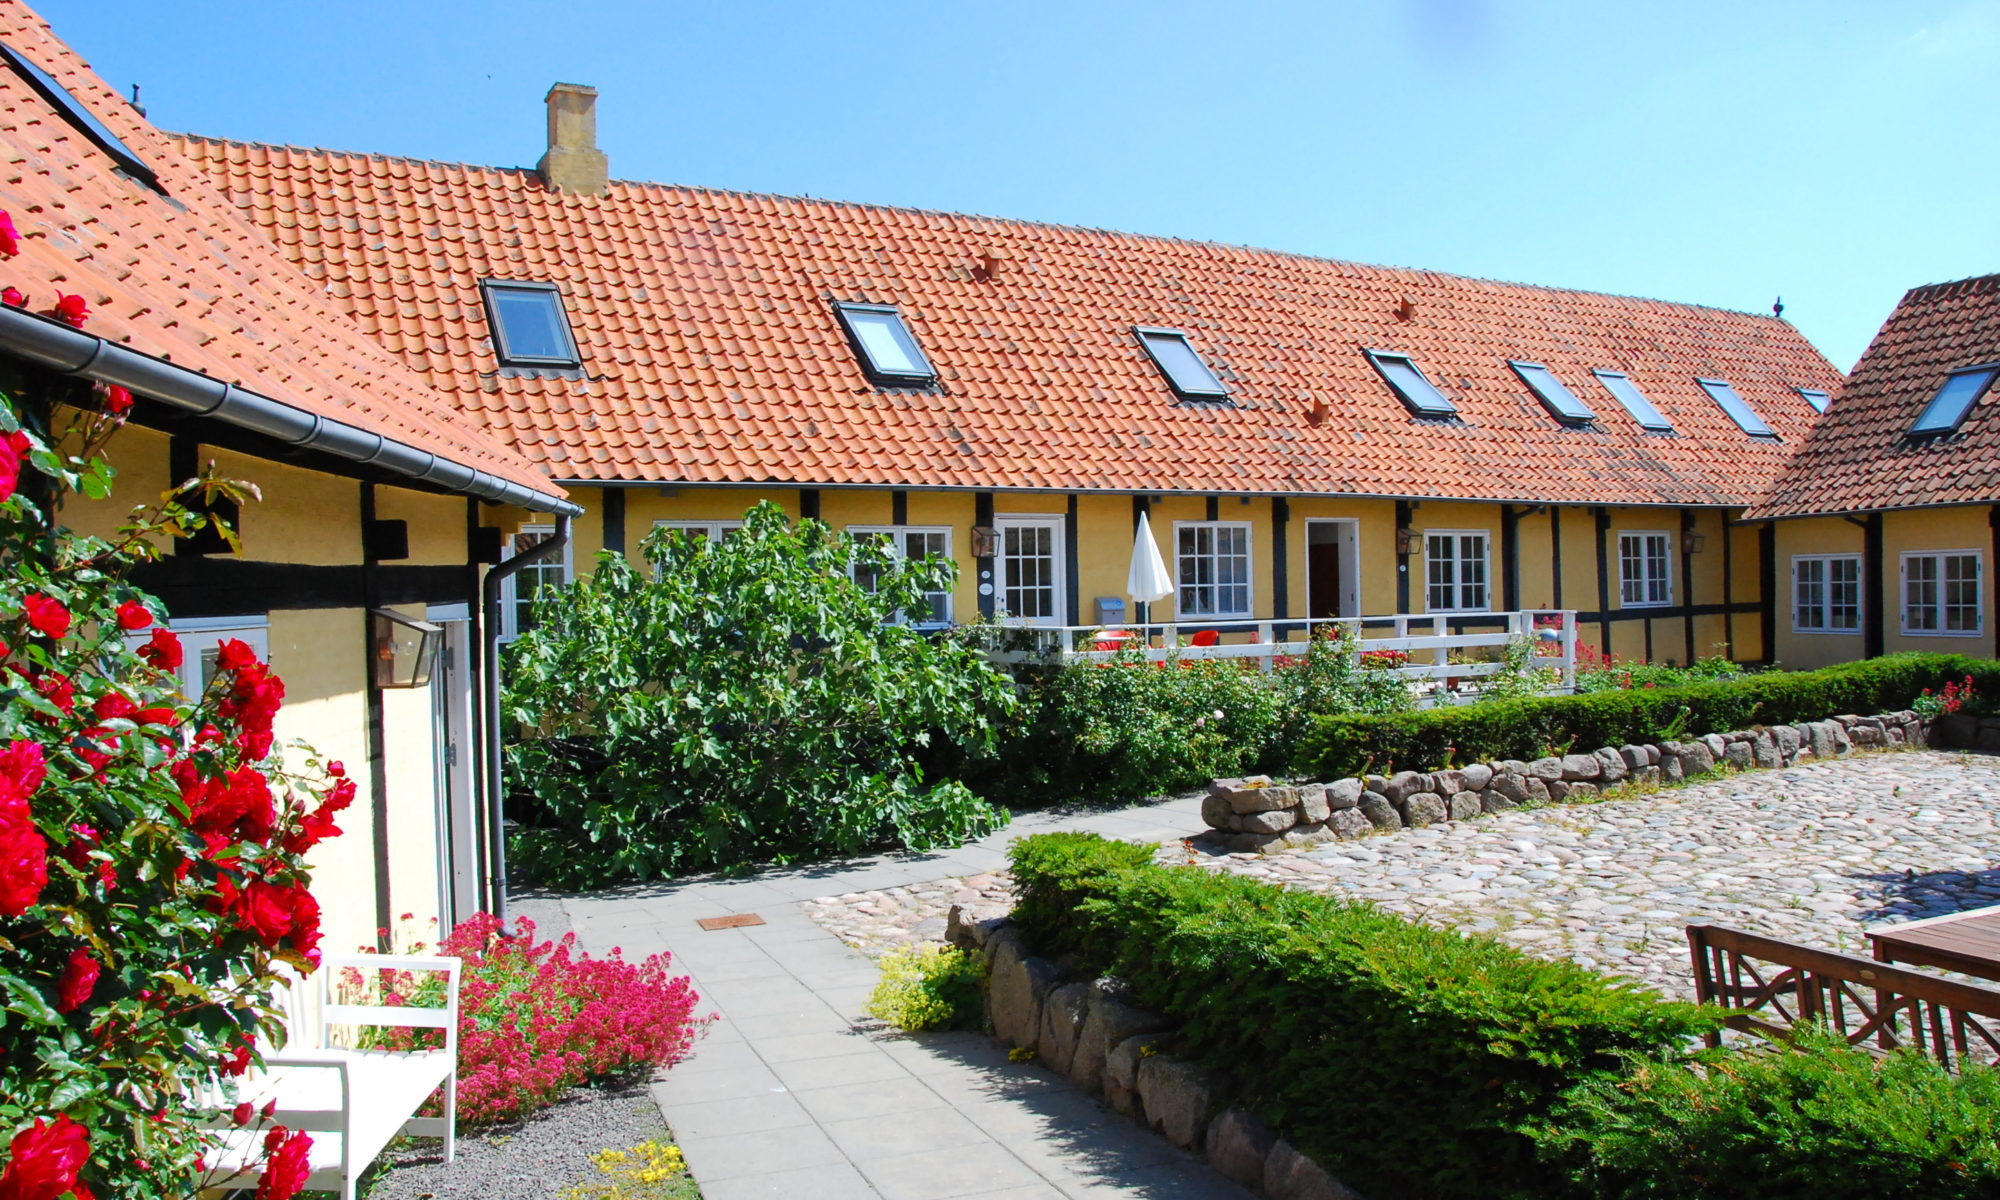 Thims Gård